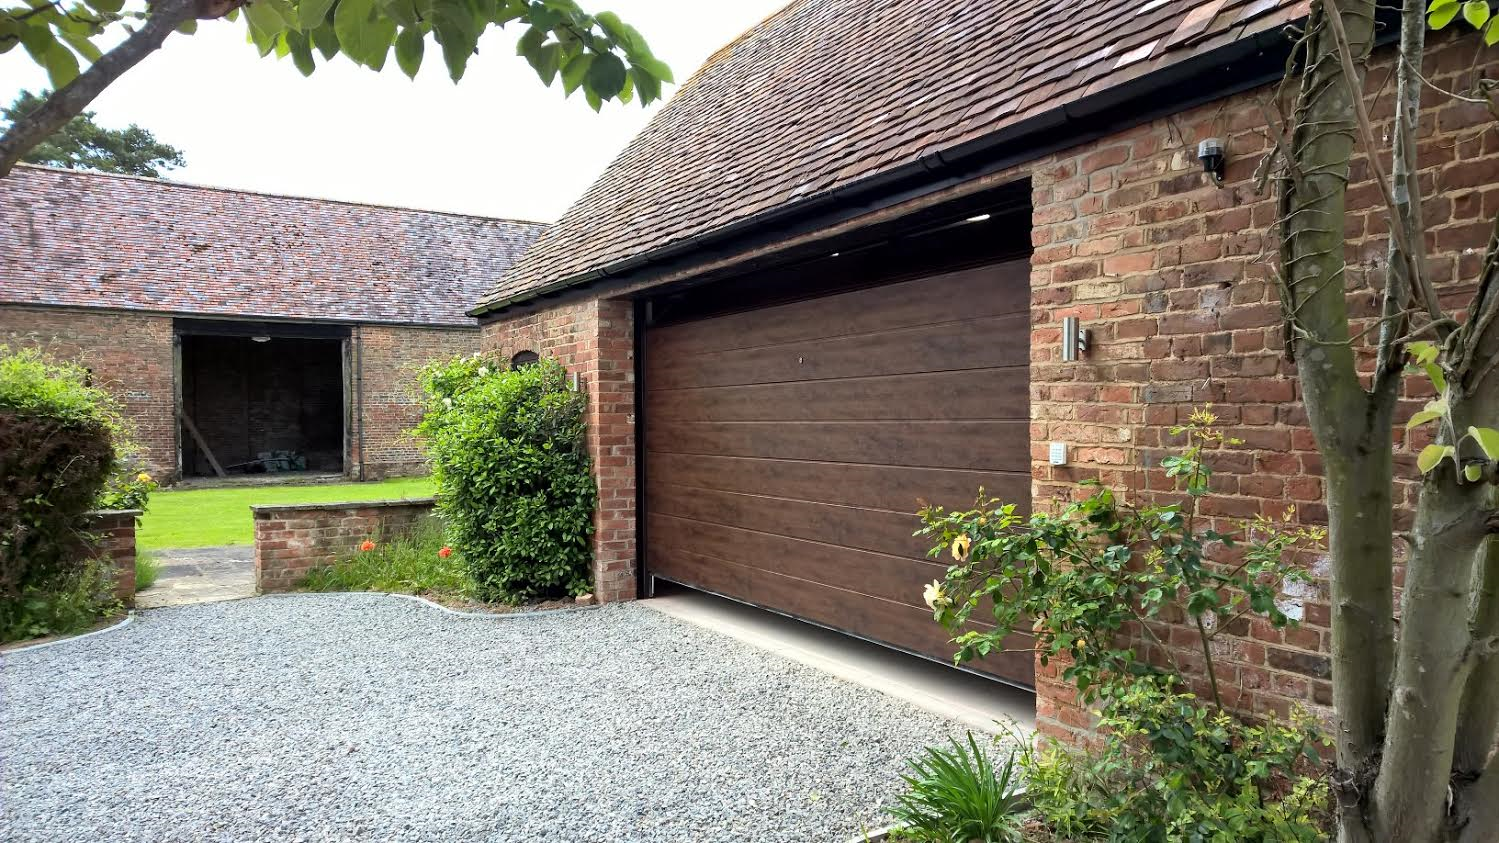 843 #496030 Dark Oak Sectional Garage Door In Gloucestershire Elite GD picture/photo Garage Doors Near Me 37391499